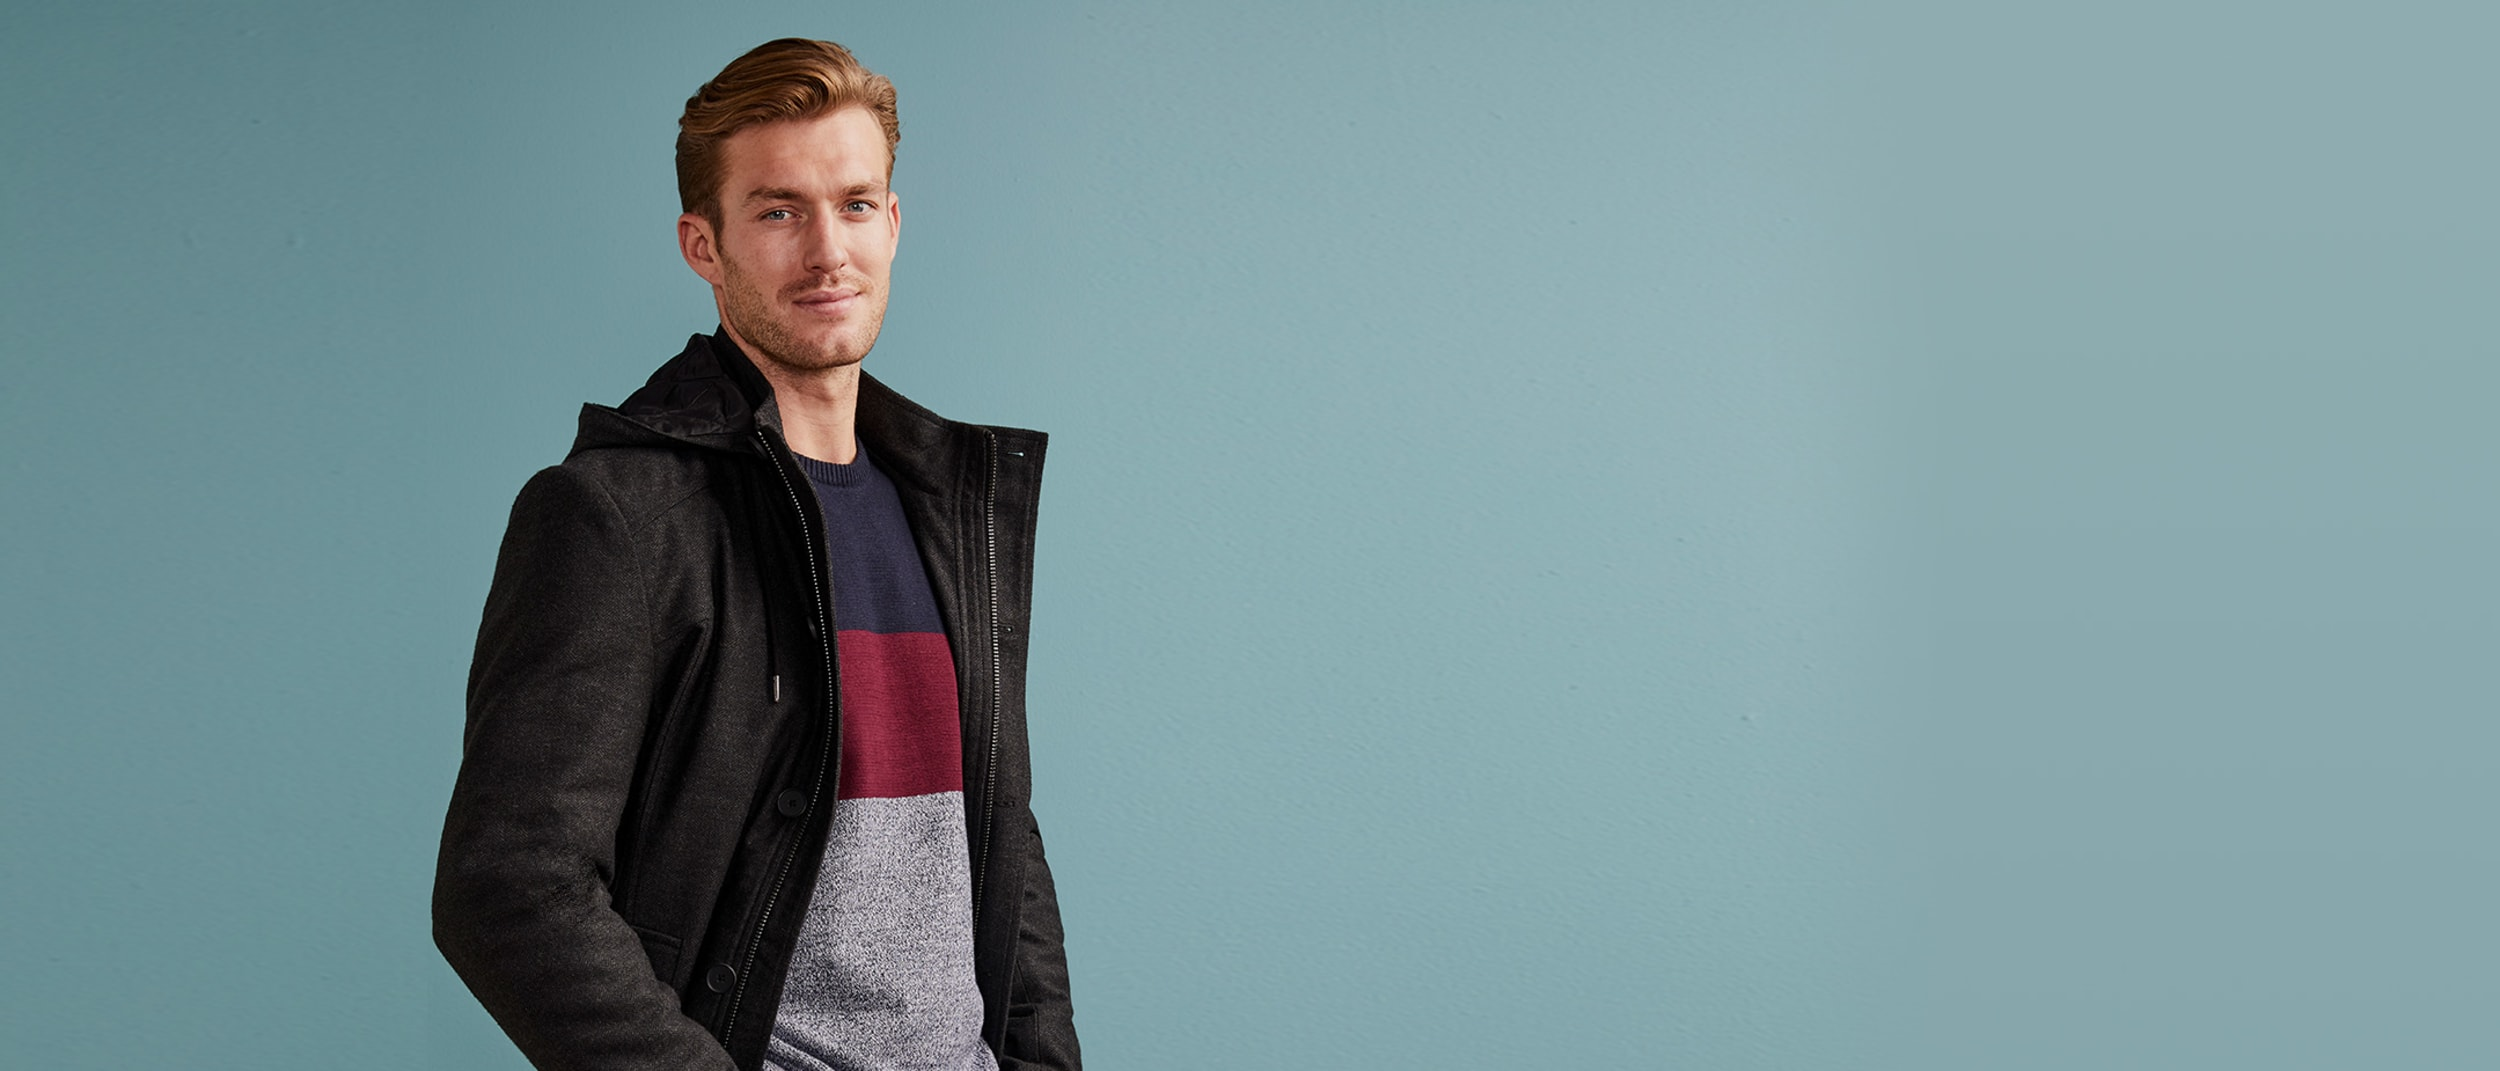 Connor: 30% off knitwear and jackets